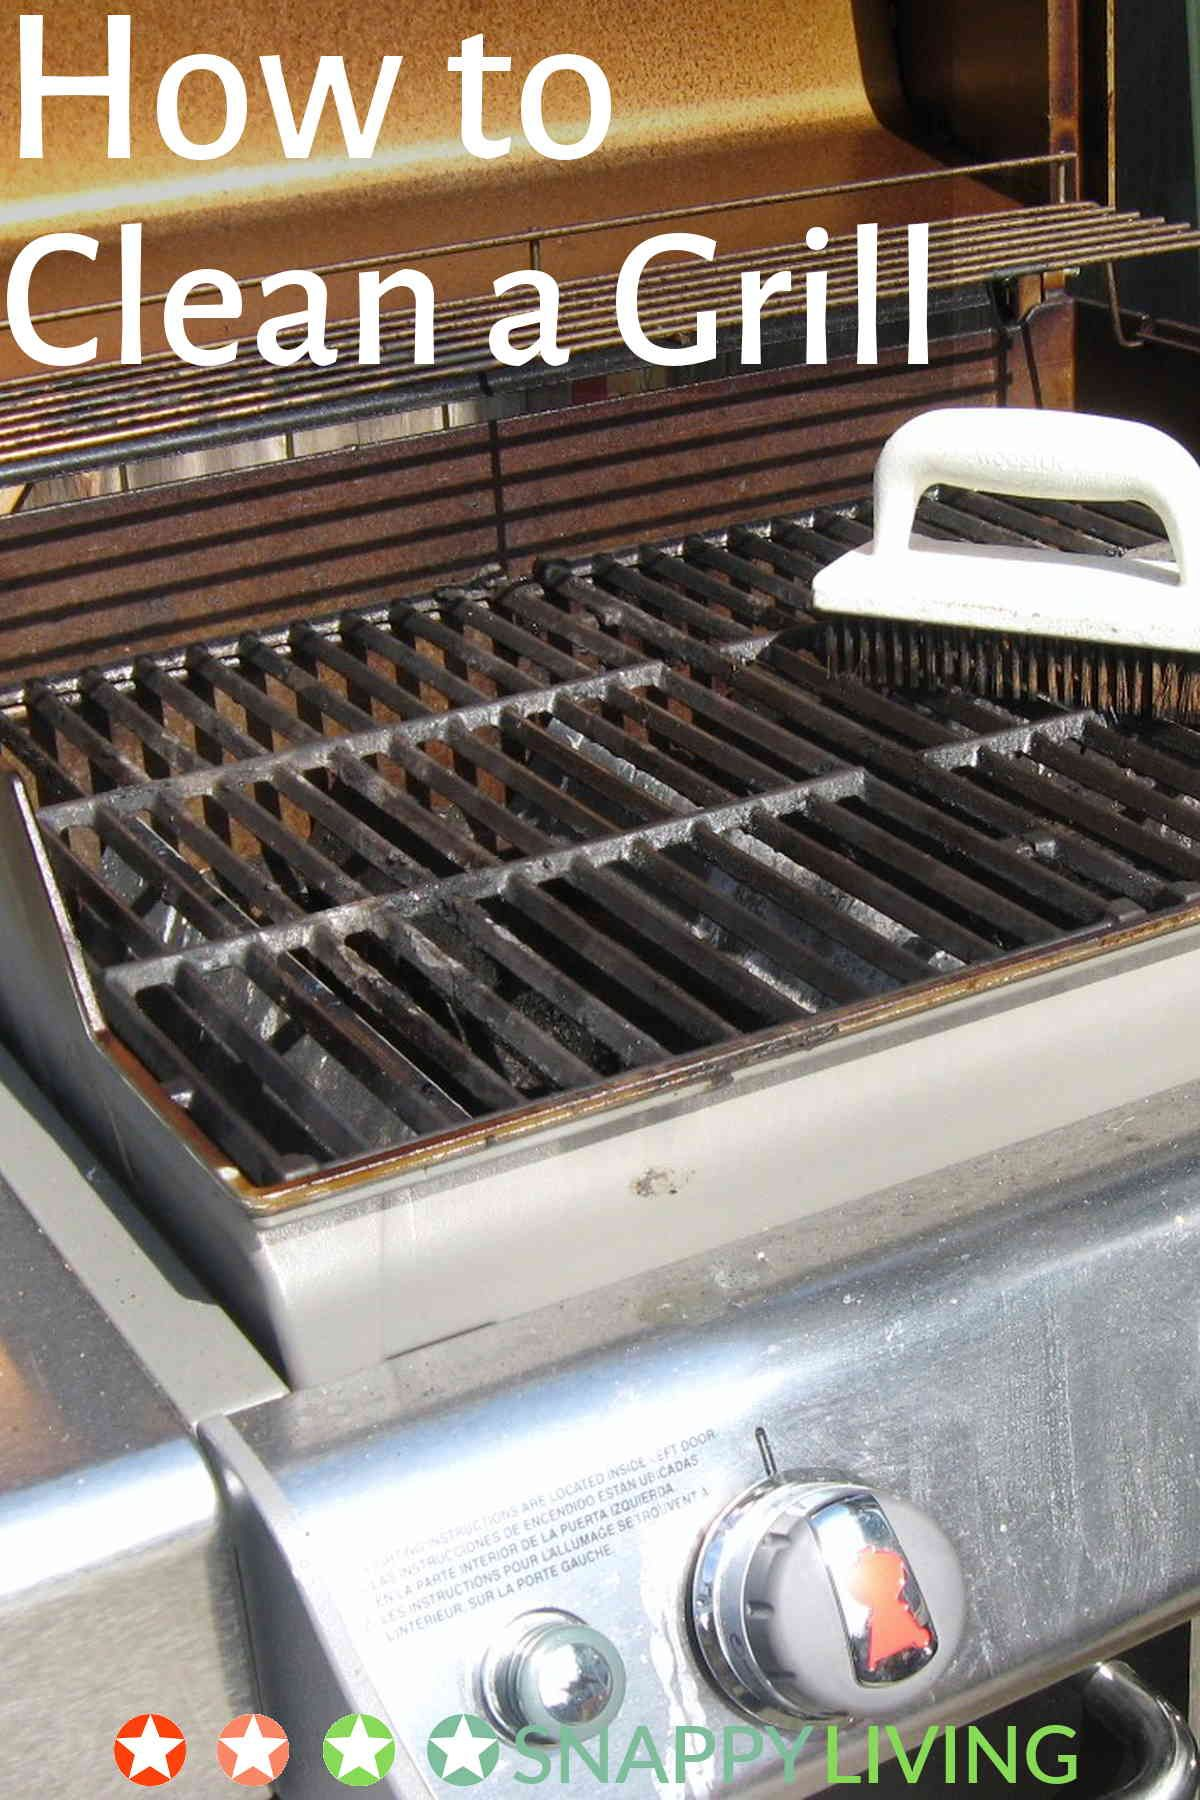 How to Clean a Grill 12 Tips Snappy Living Clean gas